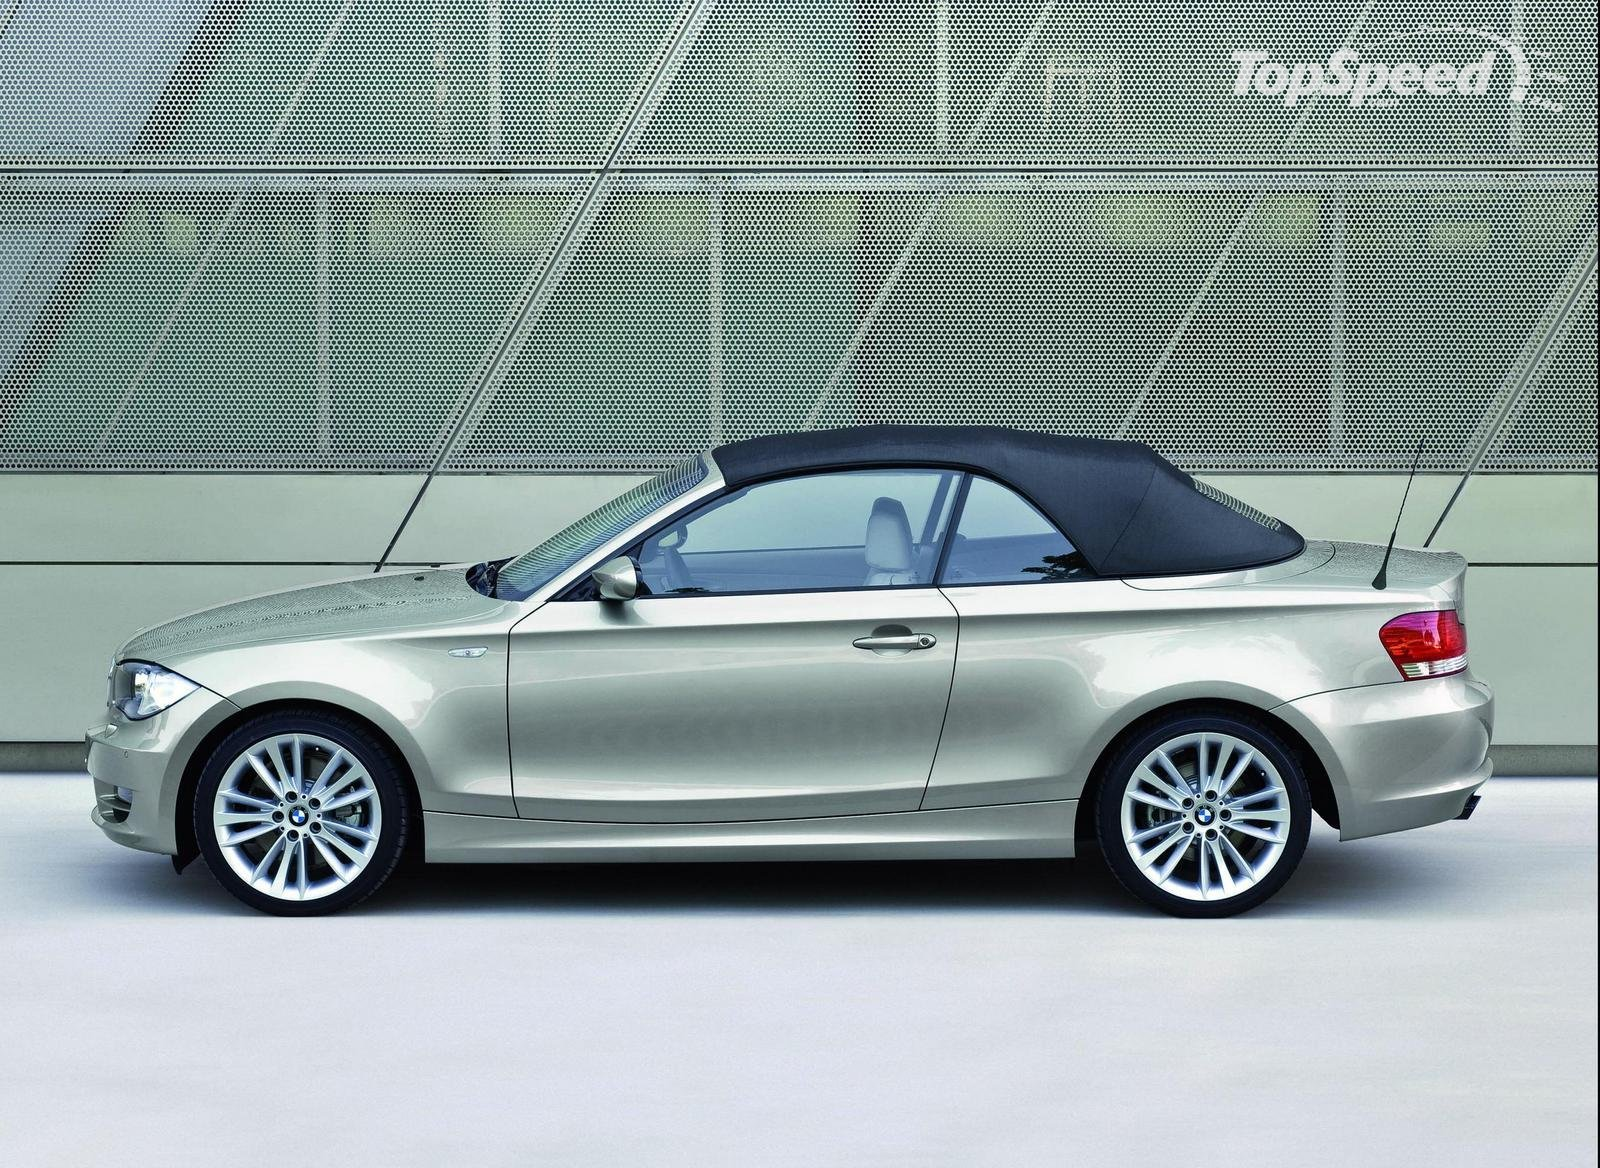 car new 2011 bmw 1 series cars wallpaper gallery and